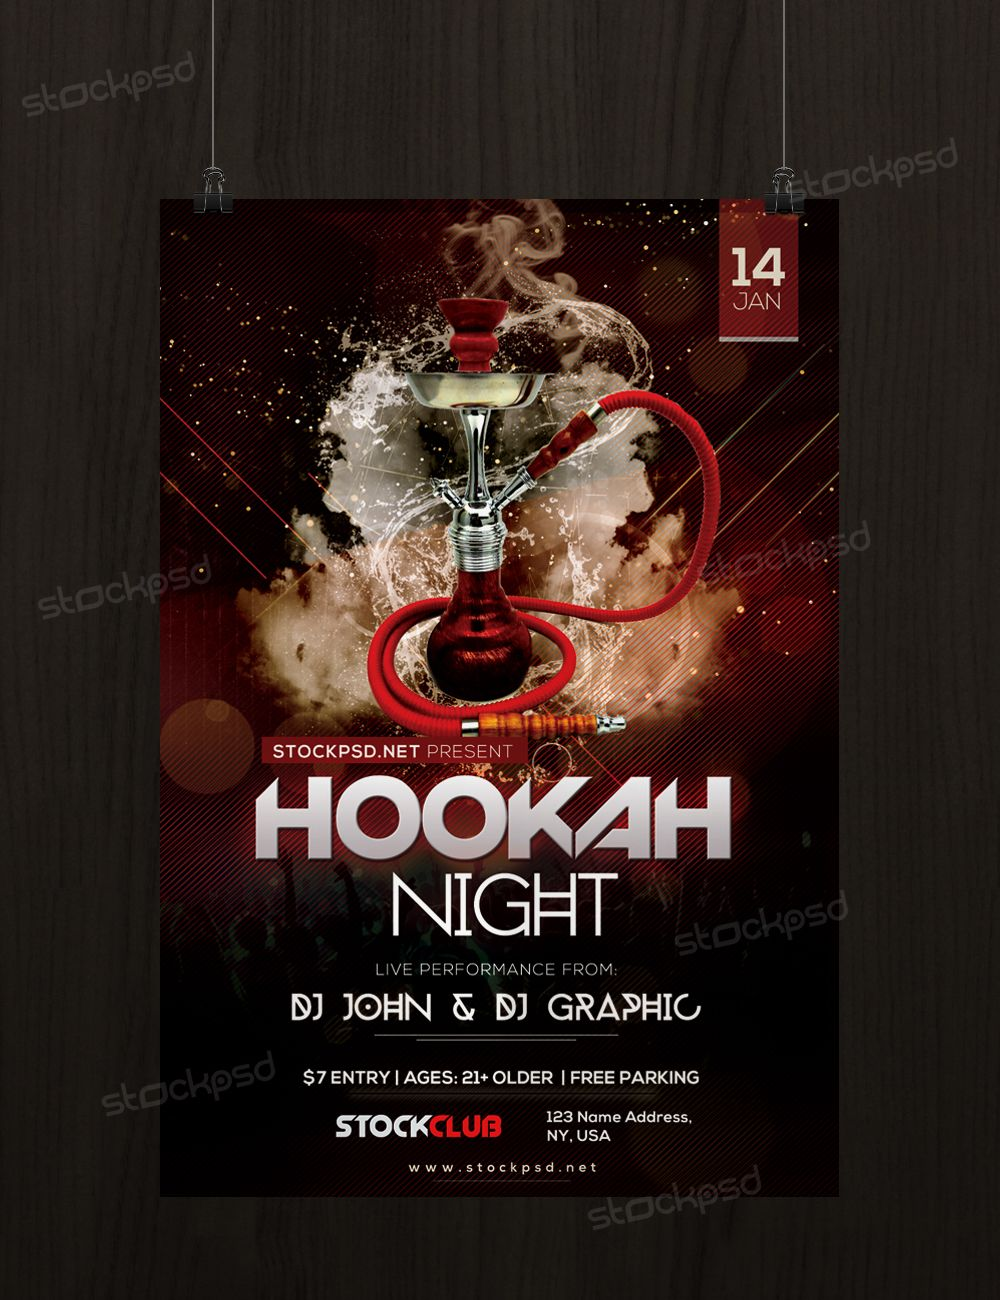 Hookah Night Free Psd Flyer Template Hookah Pinterest Free